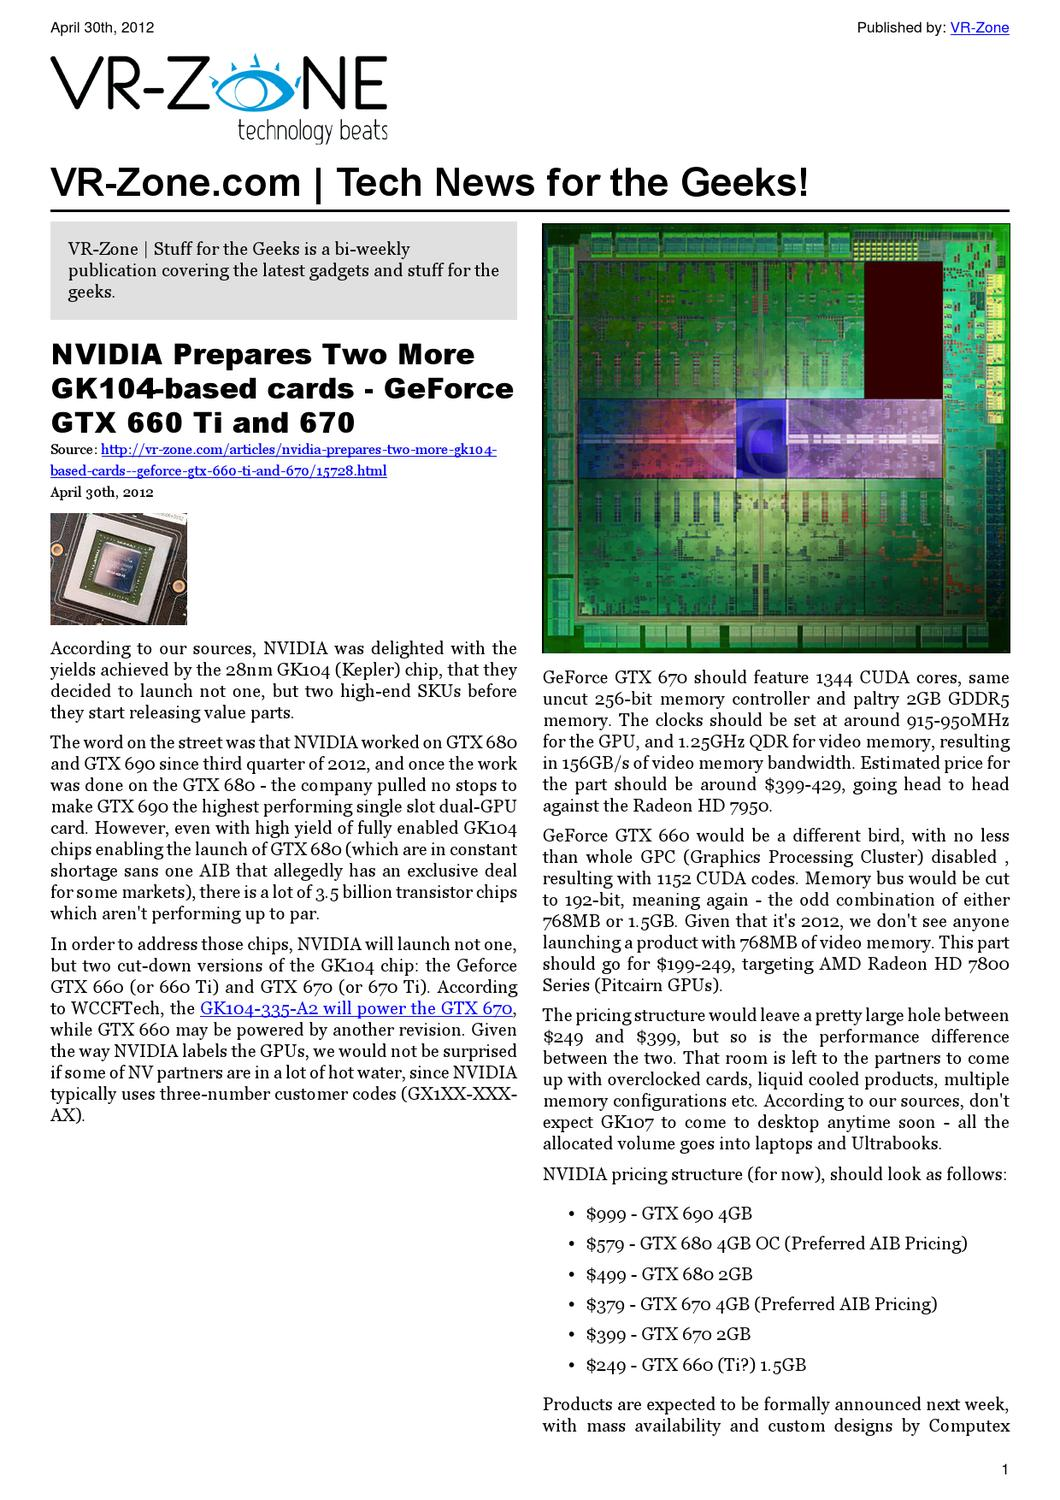 Vr Zone Tech News For The Geeks Jun 2012 Issue By Media Pte Ltd Pin Subwoofer Filter Crossover 11 90 Hz Frequency Circuit On Pinterest Issuu